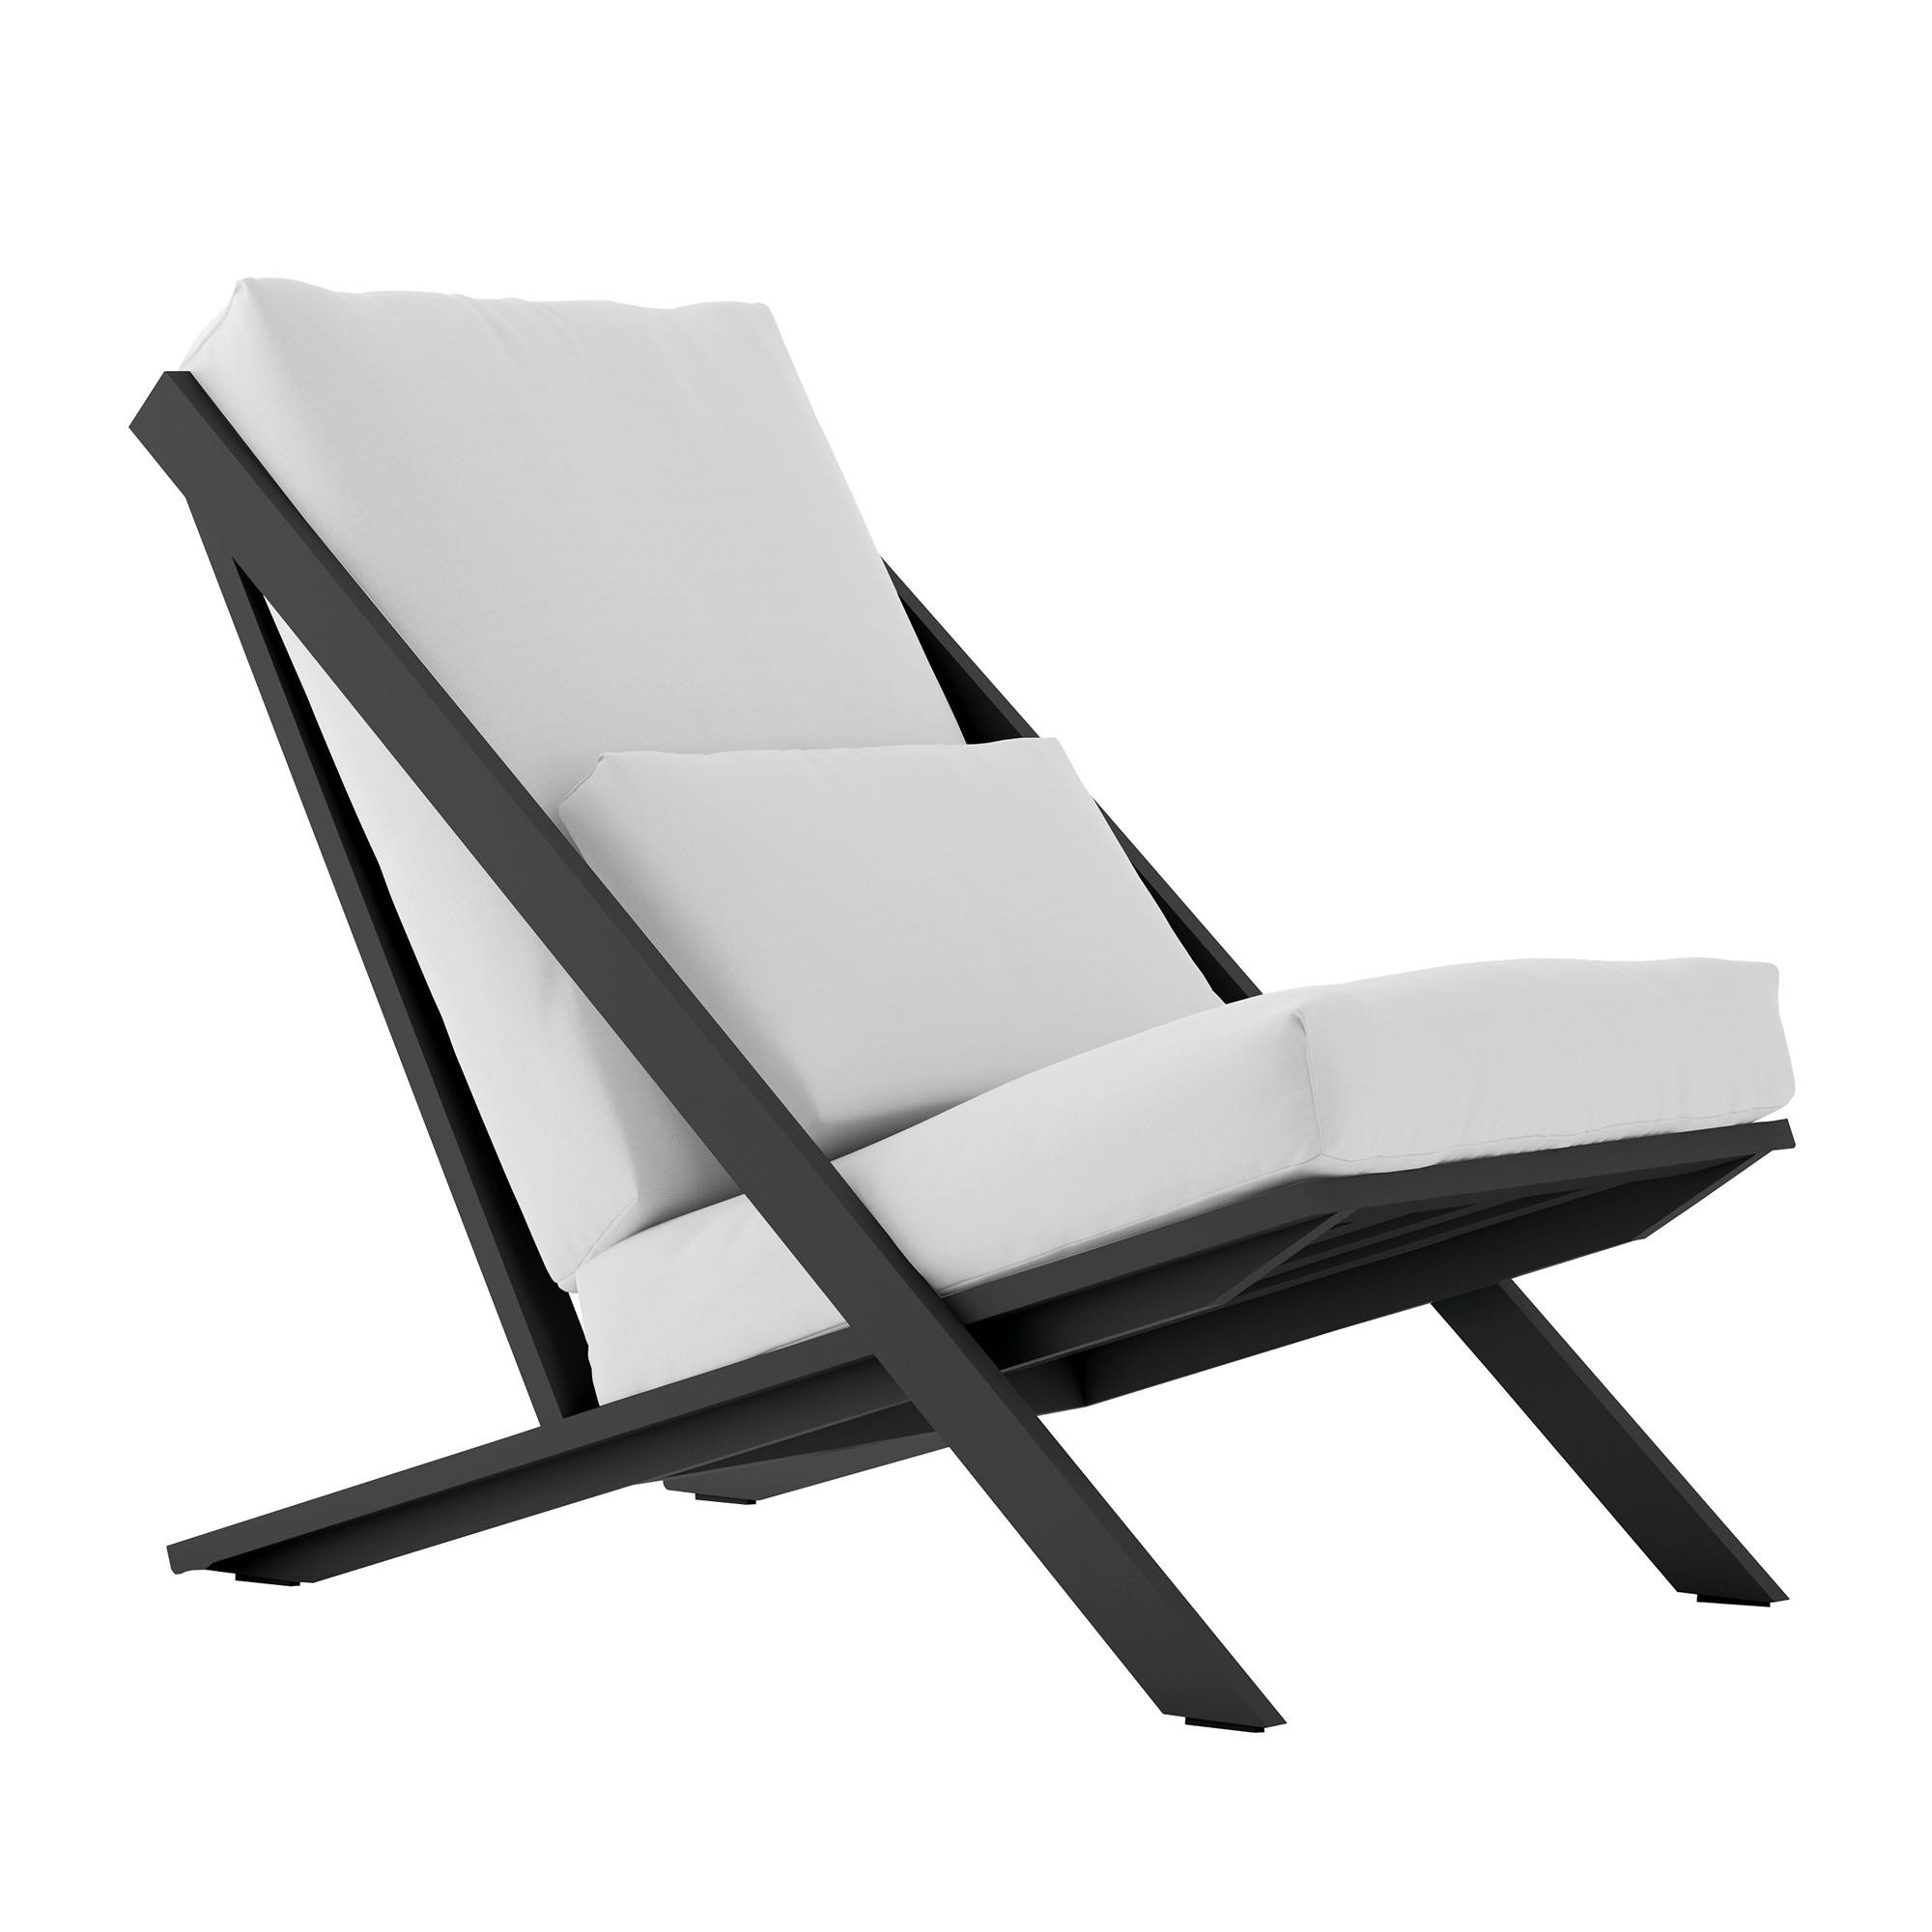 Gandia Blasco Timeless Relax Outdoor Sessel Ambientedirect